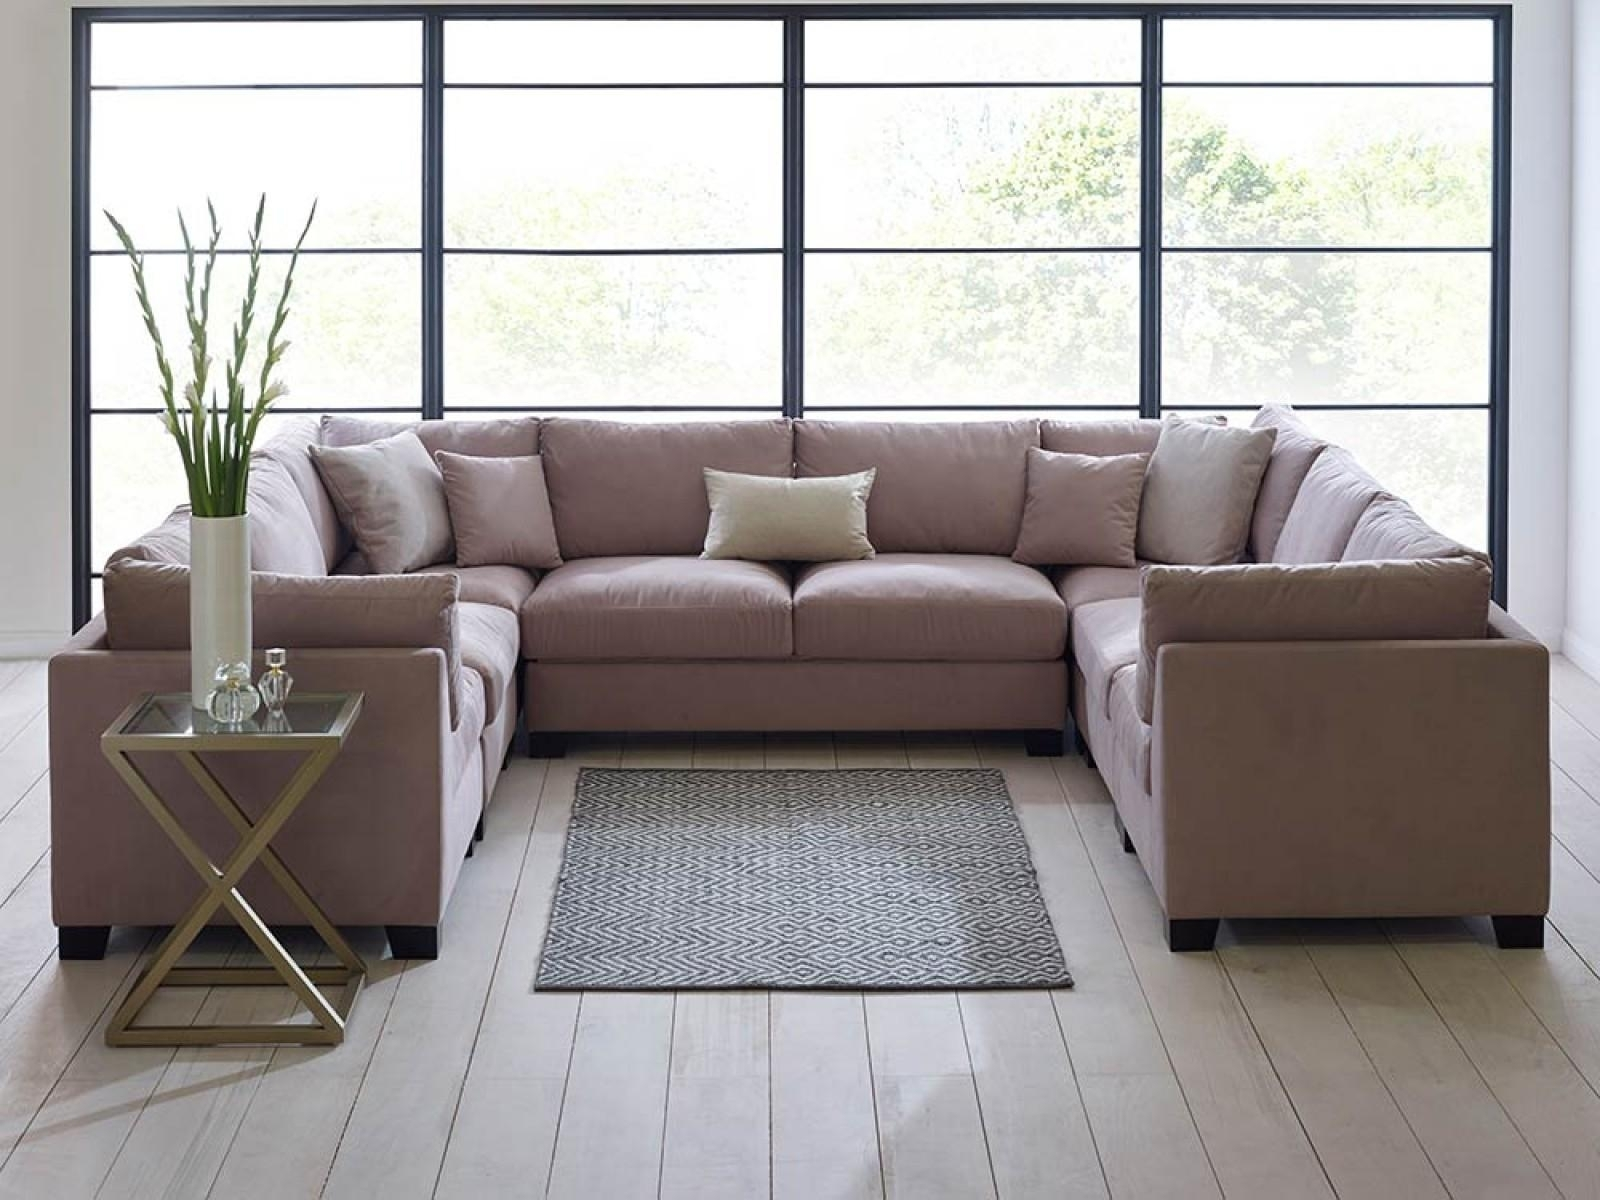 Furniture : Leather Sectional Couch Lovely U Shaped Sofa Google Intended For U Shaped Leather Sectional Sofas (View 3 of 10)